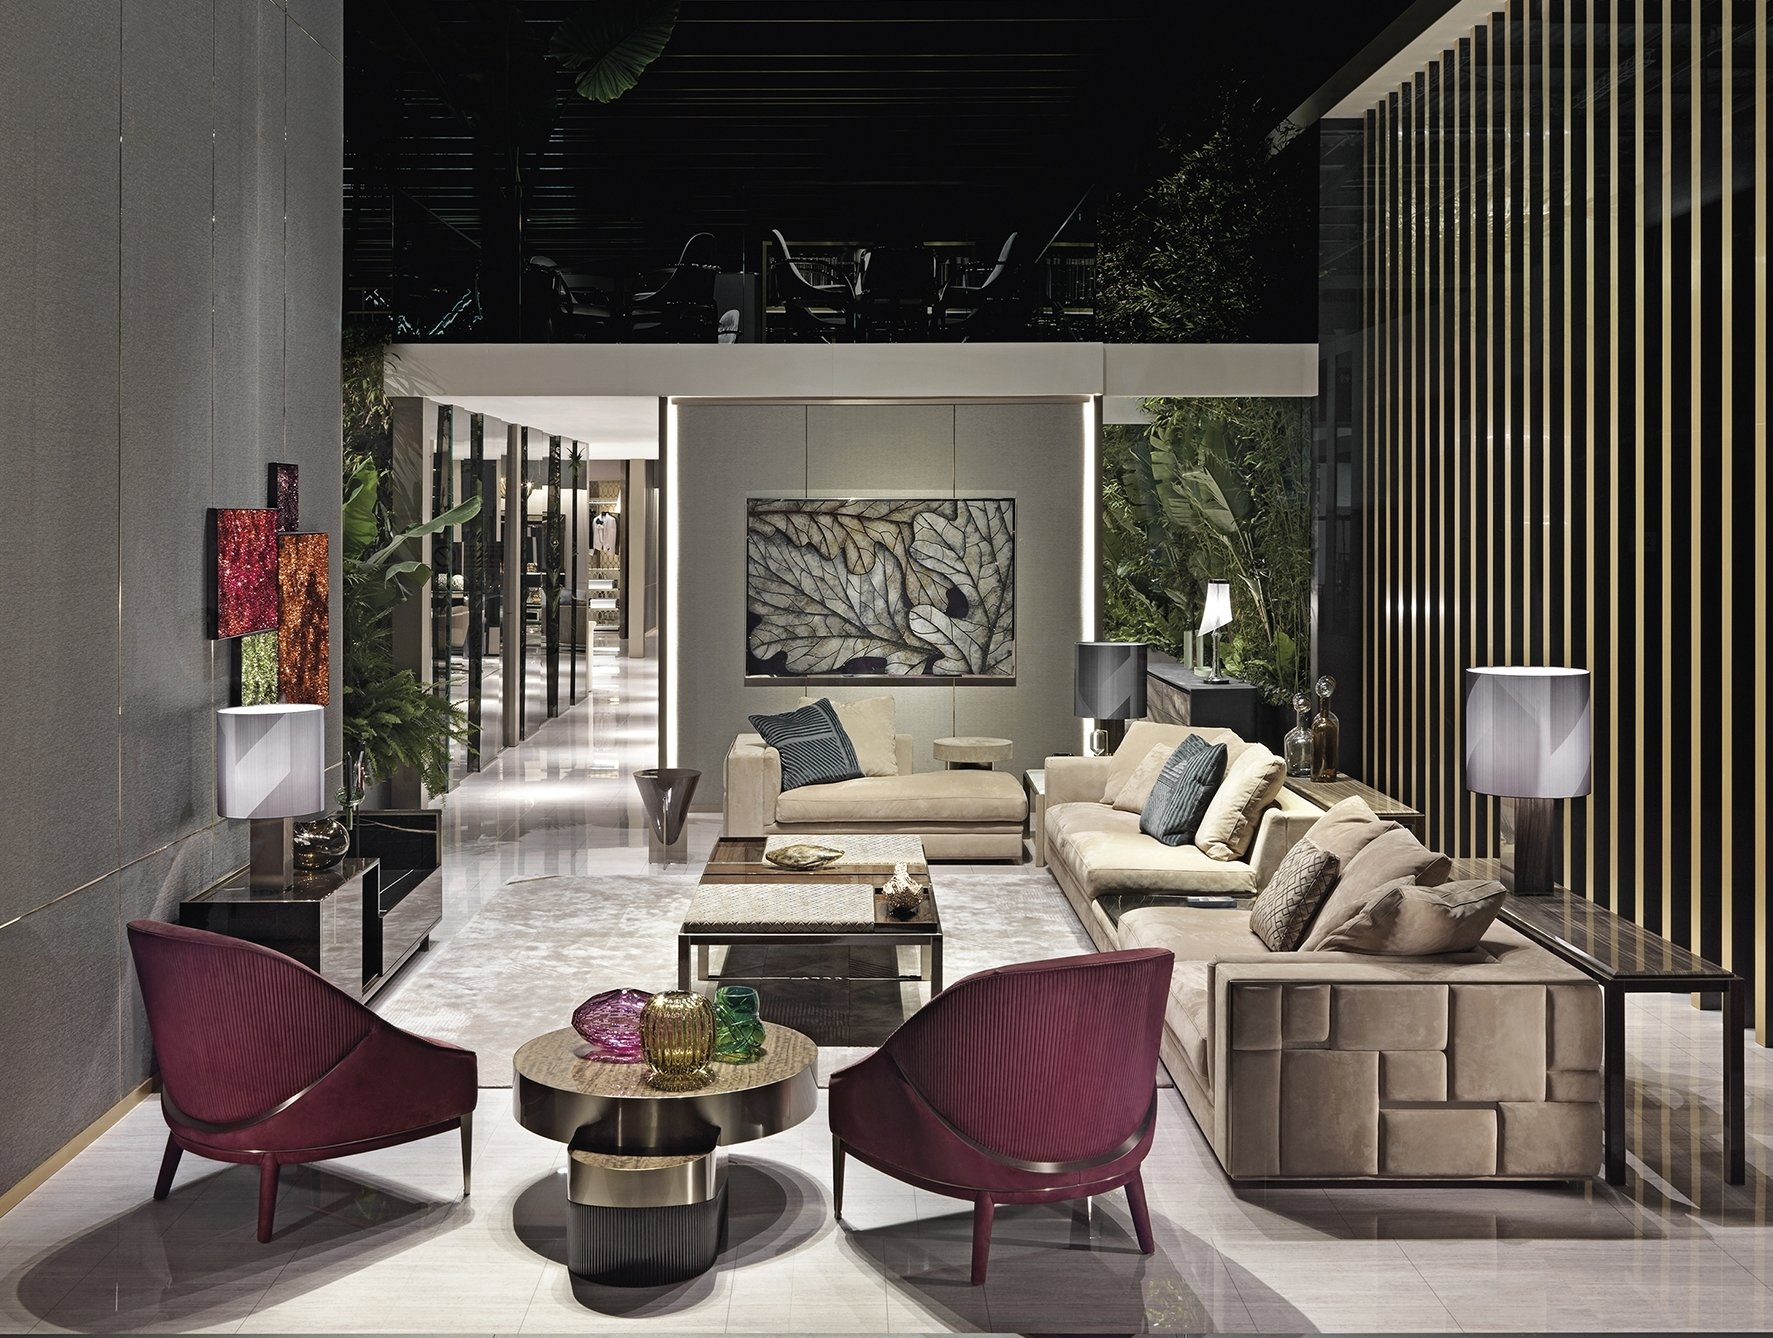 2018 Luxury Sofas With Regard To Italian Designer Luxury High End Sofas & Sofa Chairs: Nella Vetrina (View 1 of 15)